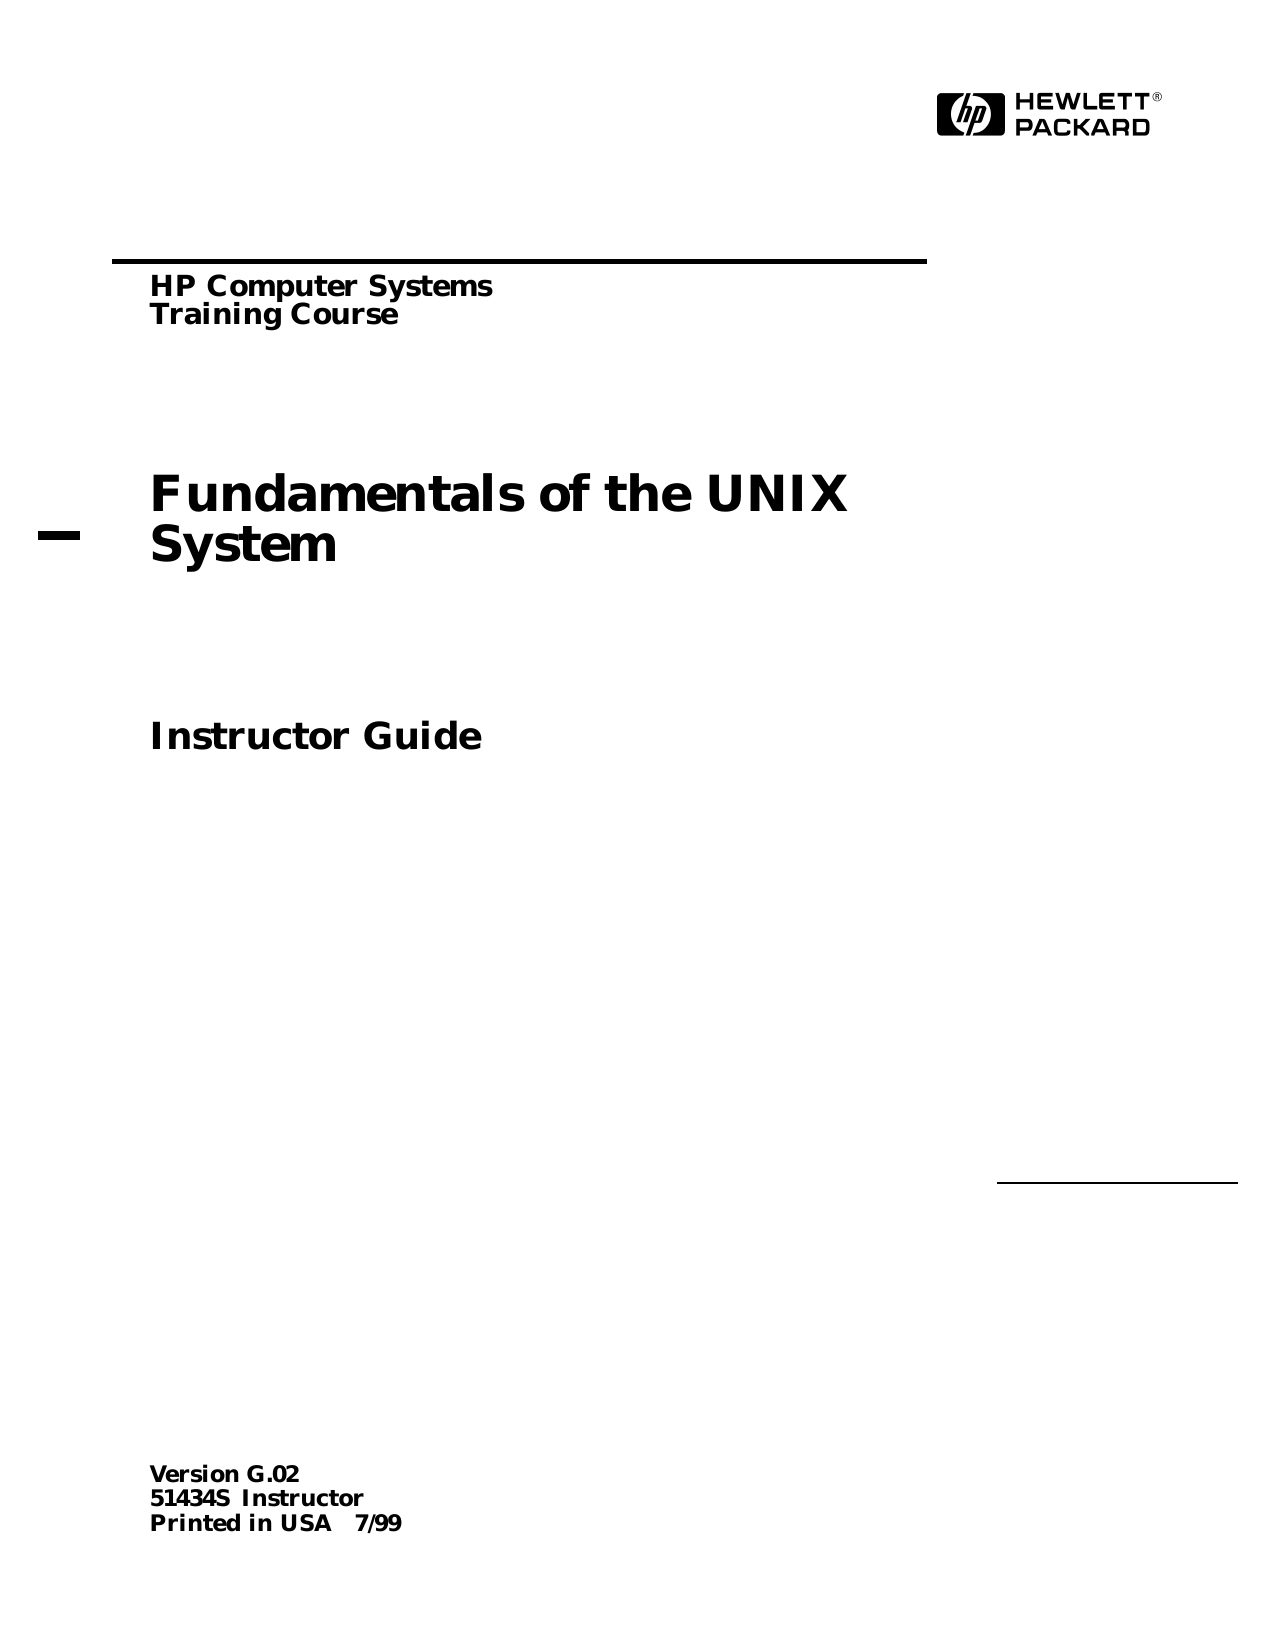 Fundamentals of the UNIX System. Instructor Guide (1999).pdf